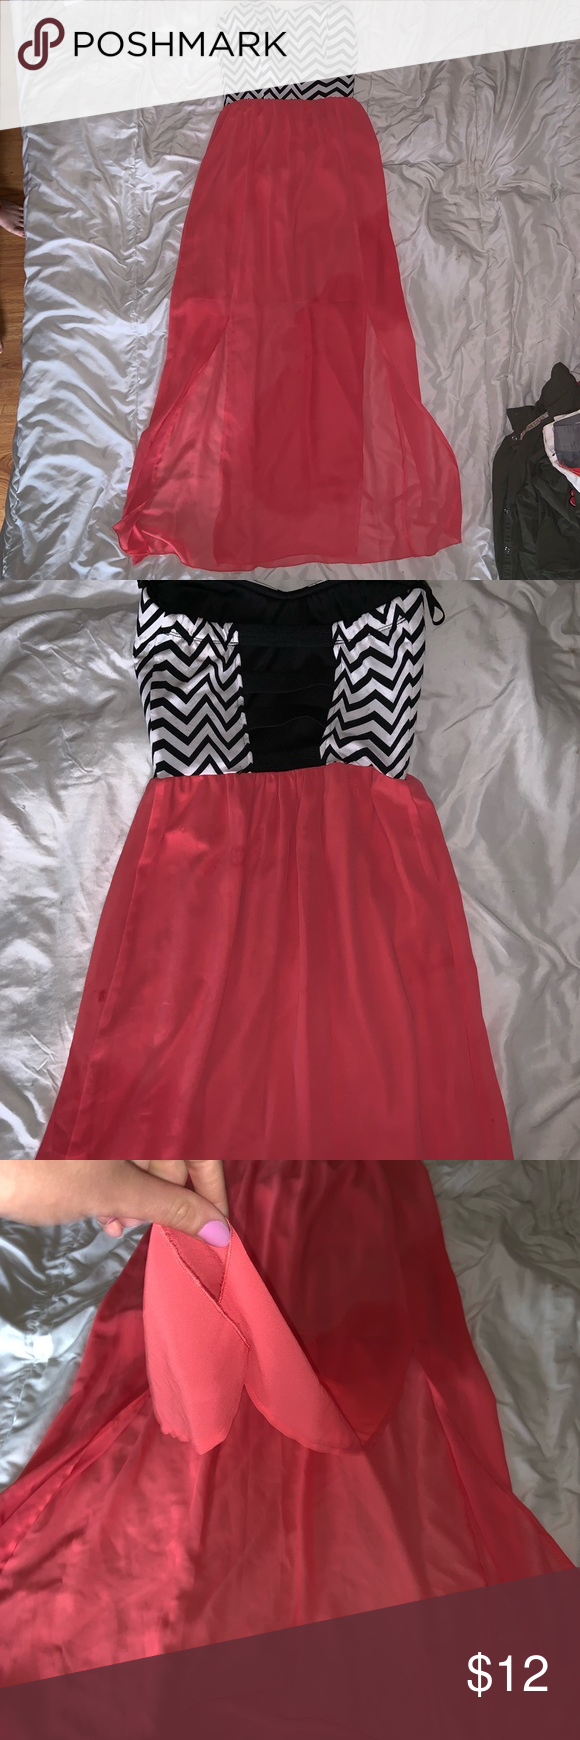 SCHOOL DANCE DRESS SZ SMALL Fairly new long black & white striped top with long pink bottom, slits on both sides ! Sweet Storm Dresses Strapless #schooldancedresses SCHOOL DANCE DRESS SZ SMALL Fairly new long black & white striped top with long pink bottom, slits on both sides ! Sweet Storm Dresses Strapless #schooldancedresses